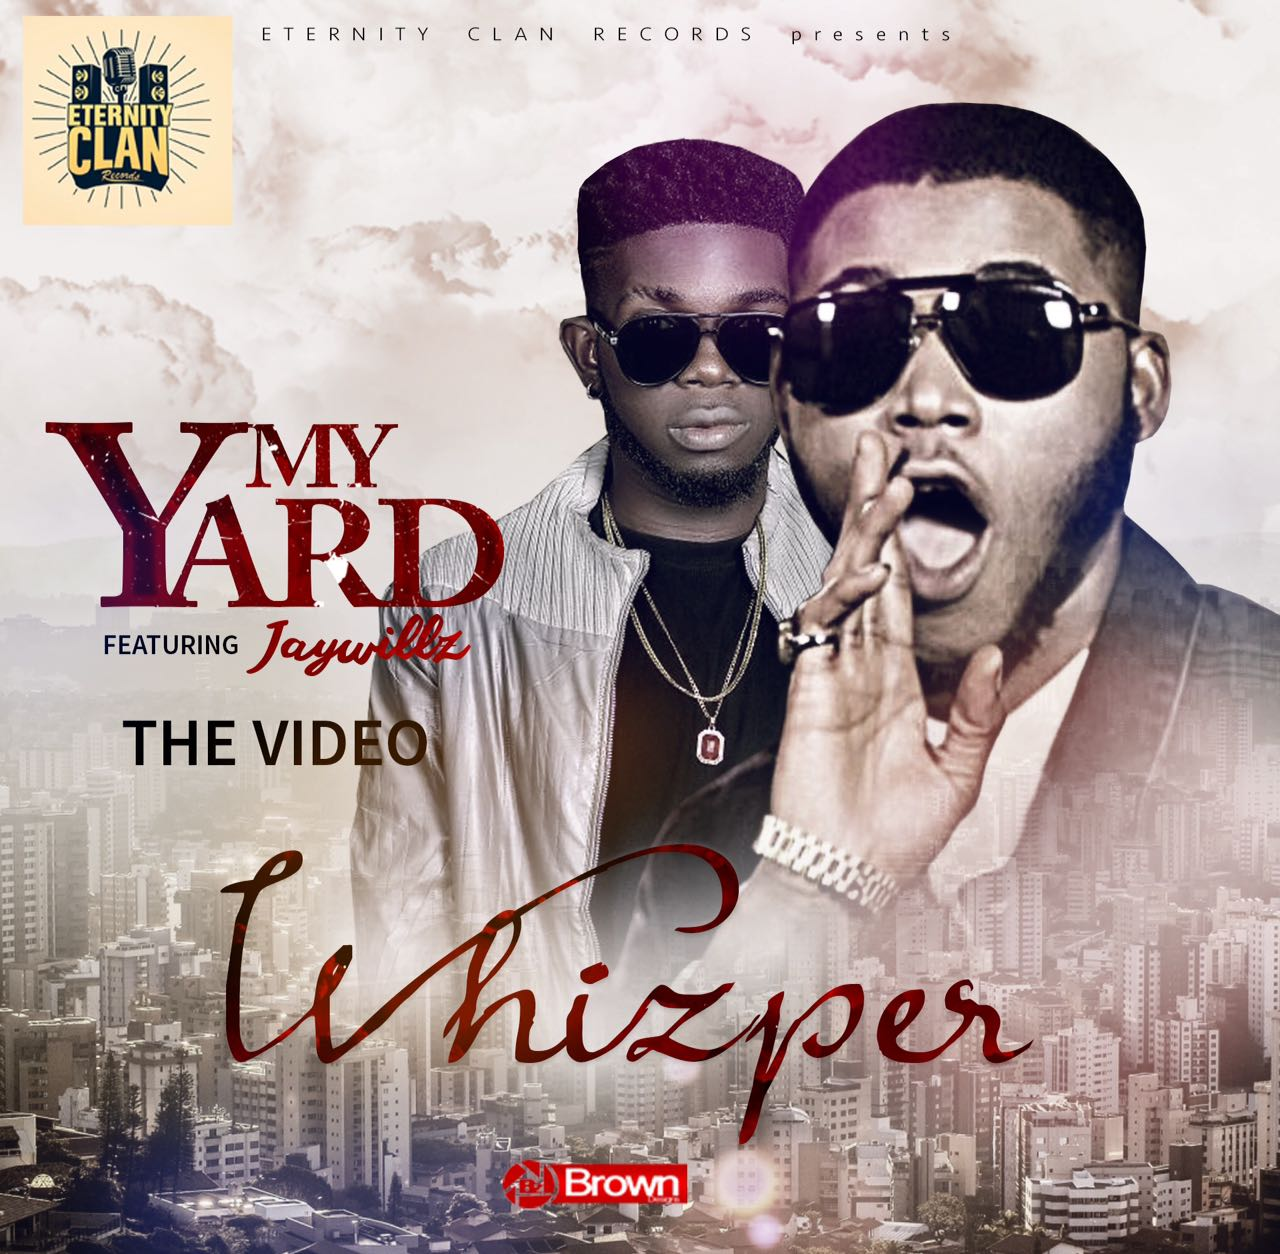 VIDEO: Whizper ft. Jaywillz – My Yard